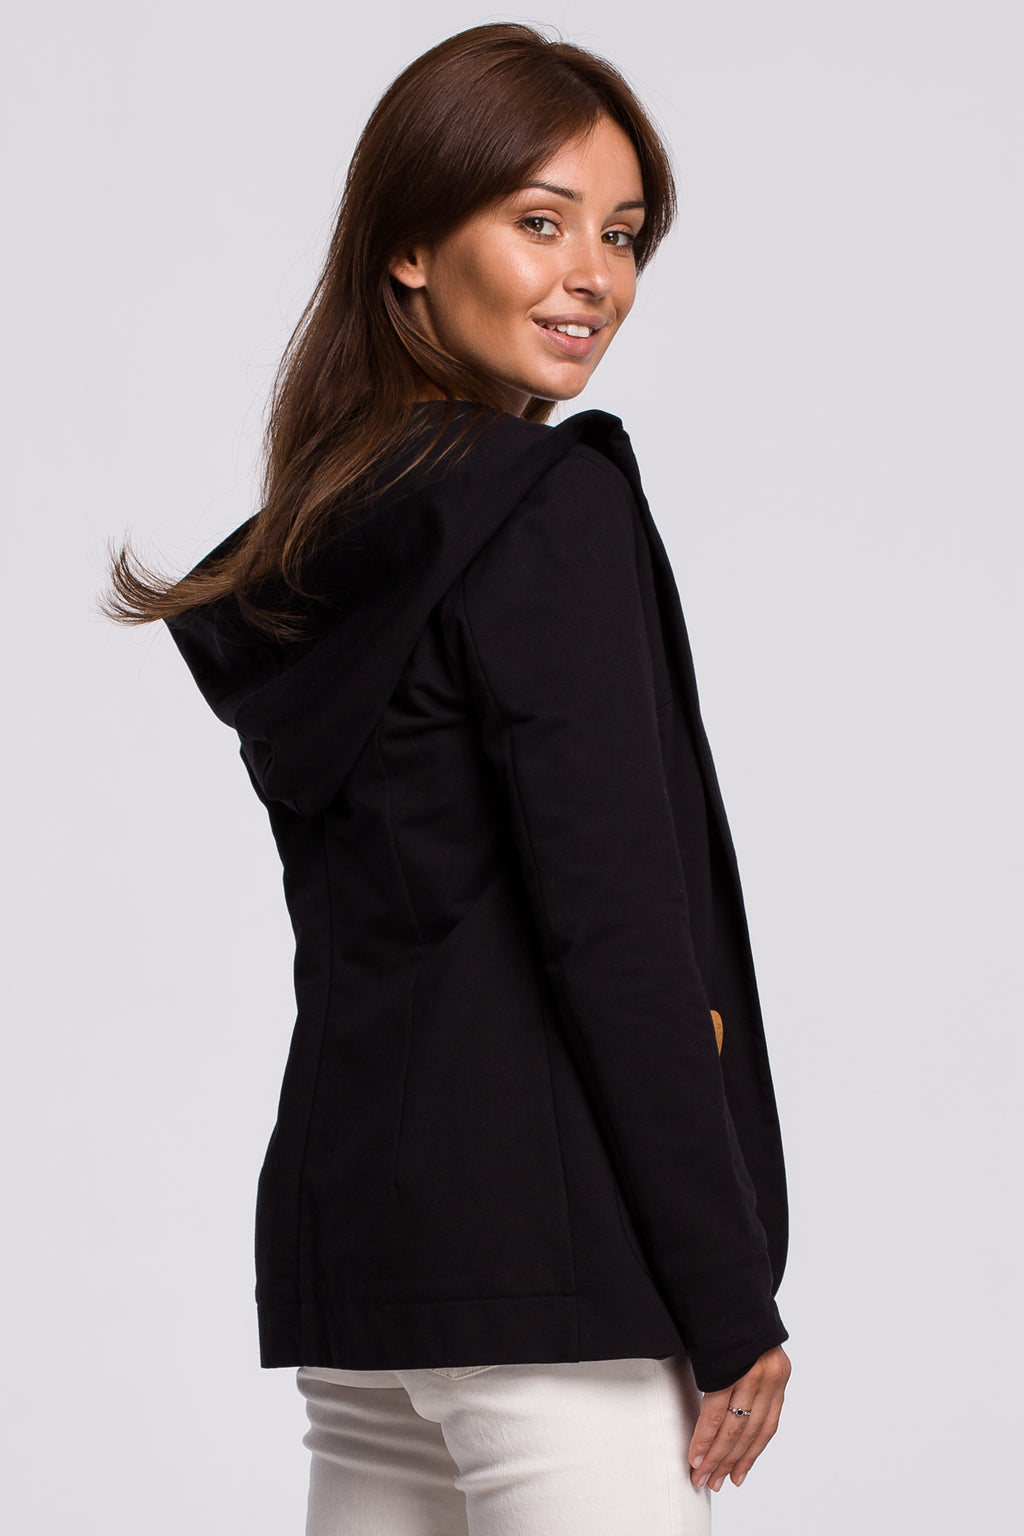 Black Cotton Jacket With A Hood - So Chic Boutique